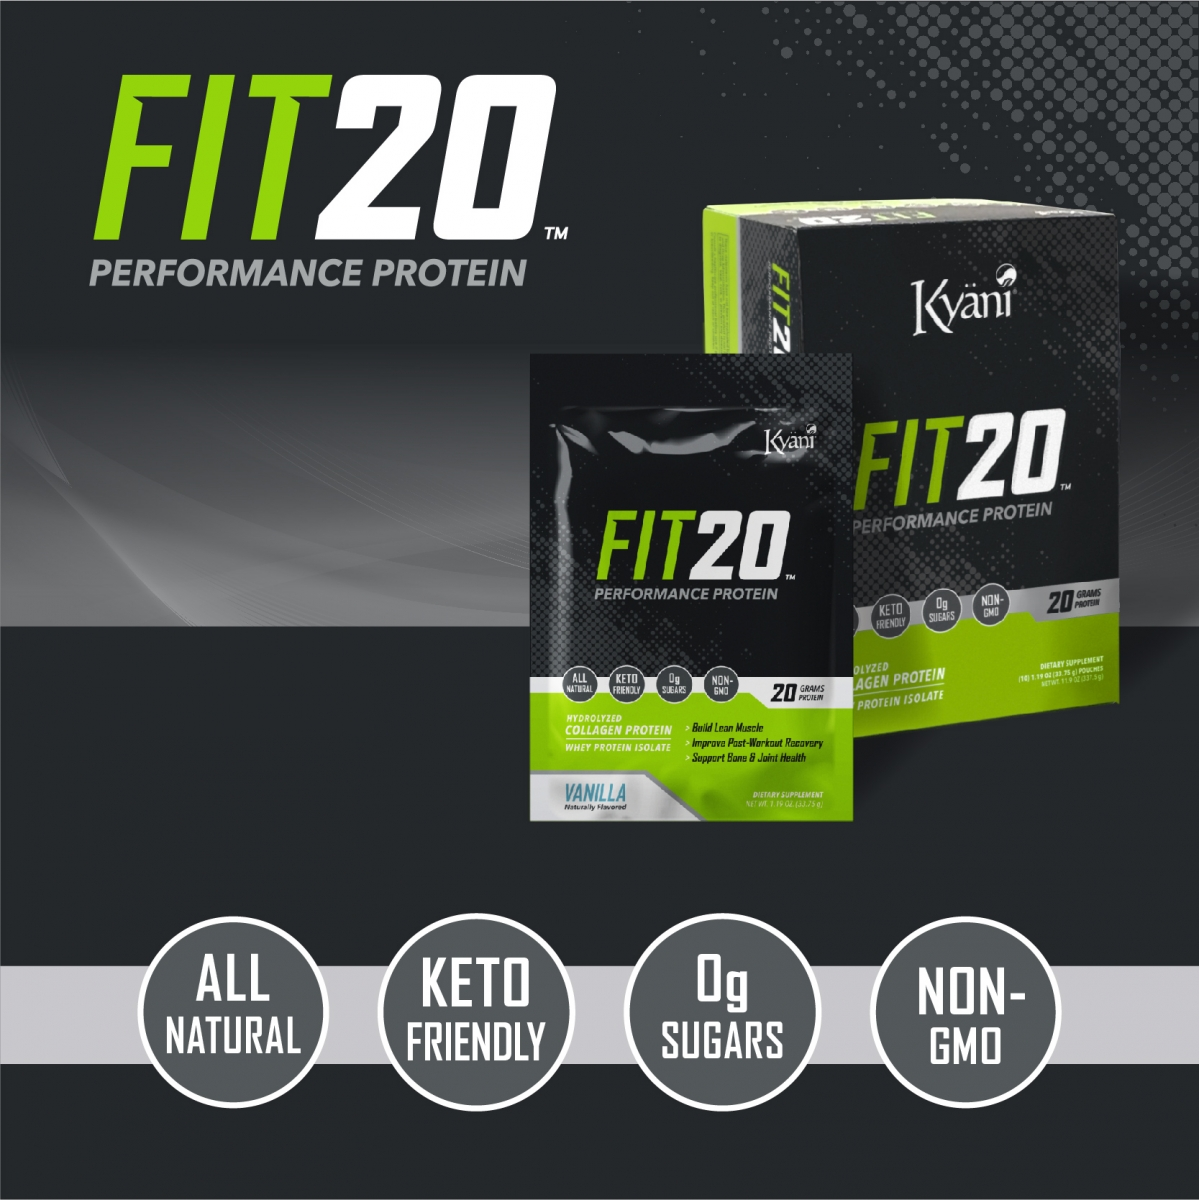 Kyani FIT20 - 2 Pack